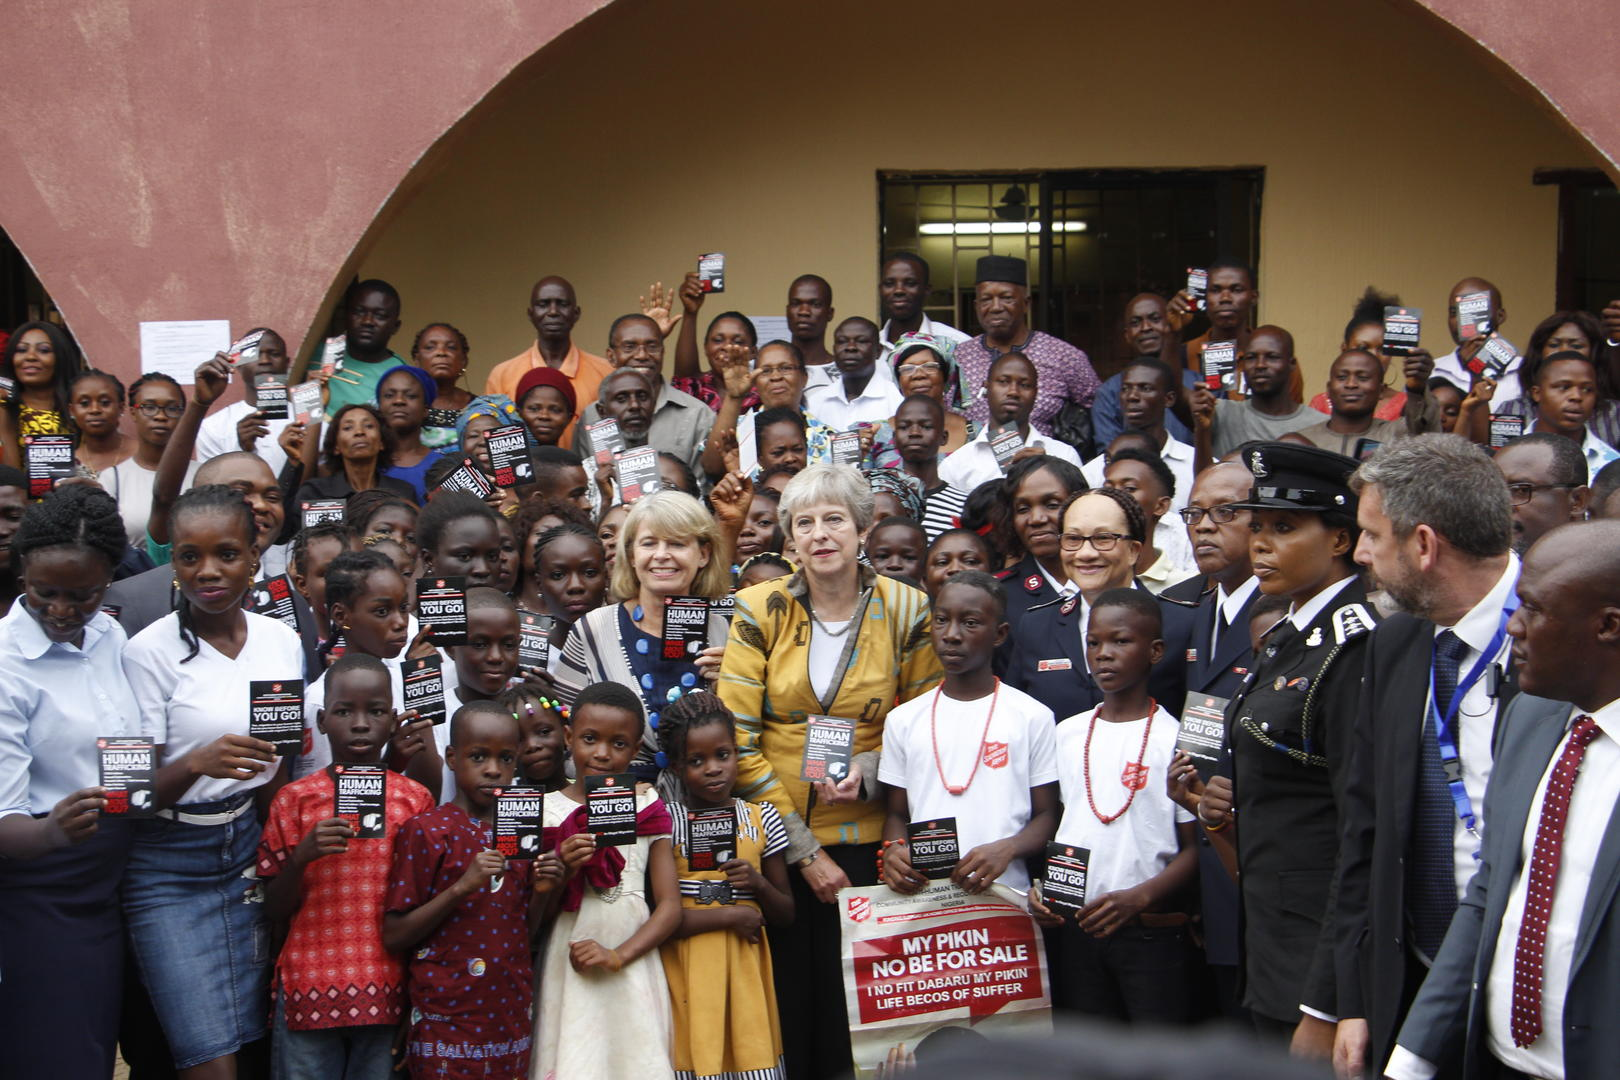 Theresa May Salvation Army modern slavery project Salvation Army